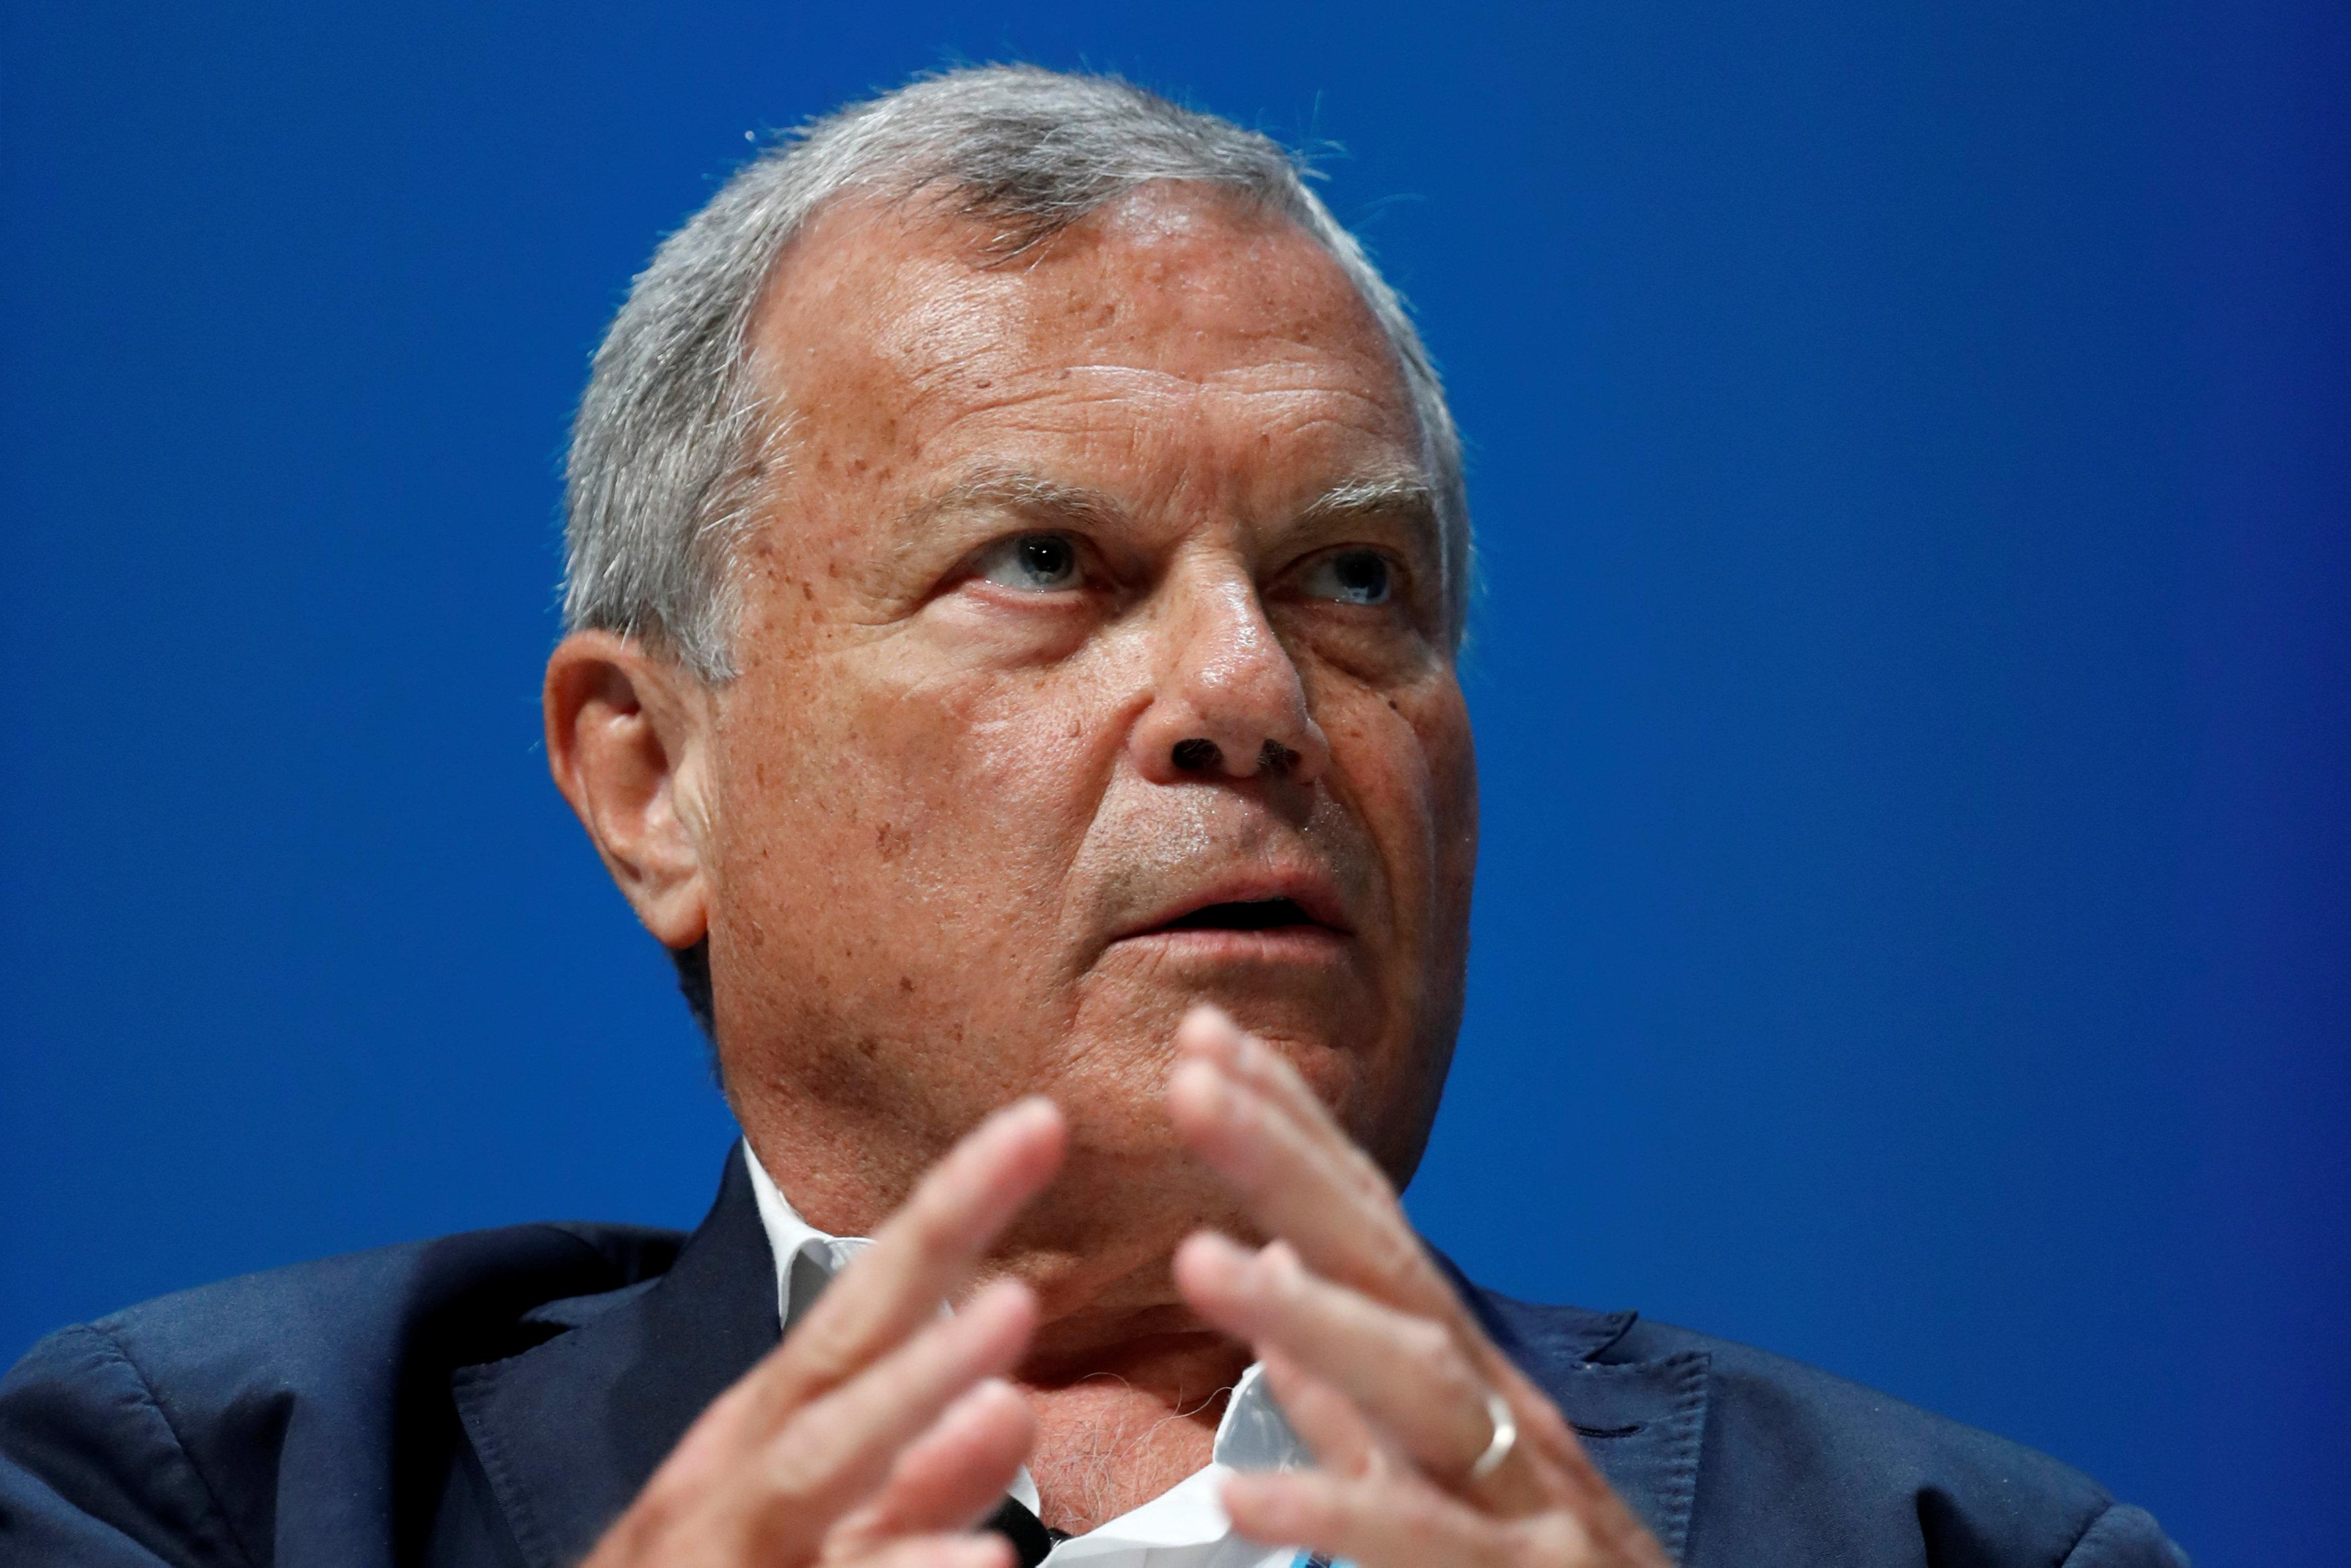 Sir Martin Sorrell attends a conference at the Cannes Lions International Festival of Creativity, in Cannes, France, June 22, 2018.  Eric Gaillard